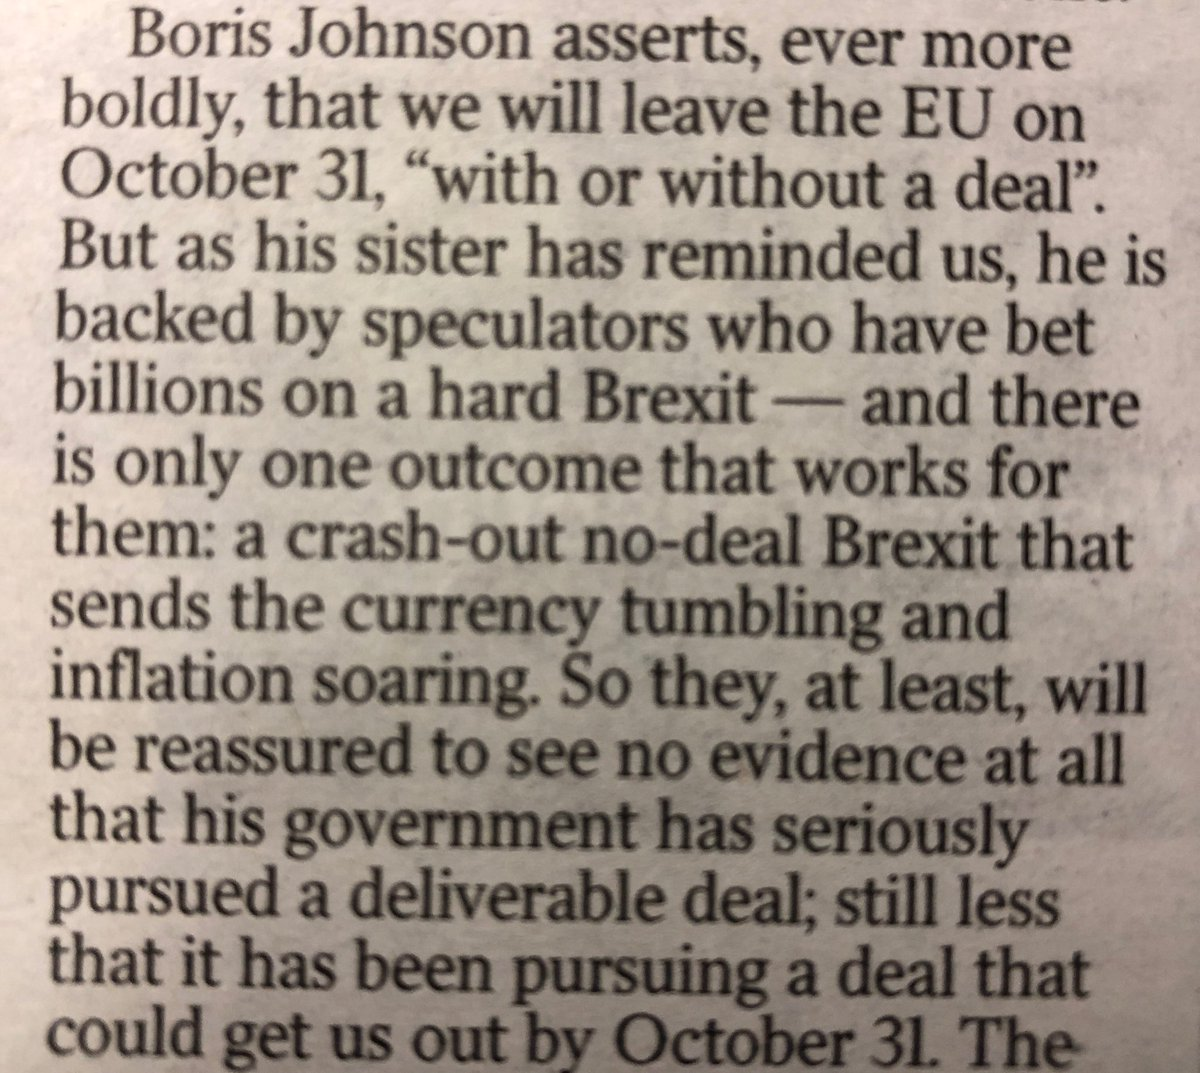 Philip Hammond, ex-Chancellor, seriously suggests in today's Times that one reason the Prime Minister may want a hard Brexit is so that his backers in the City don't lose billions — corruption on a scale I wouldn't dare put in fiction